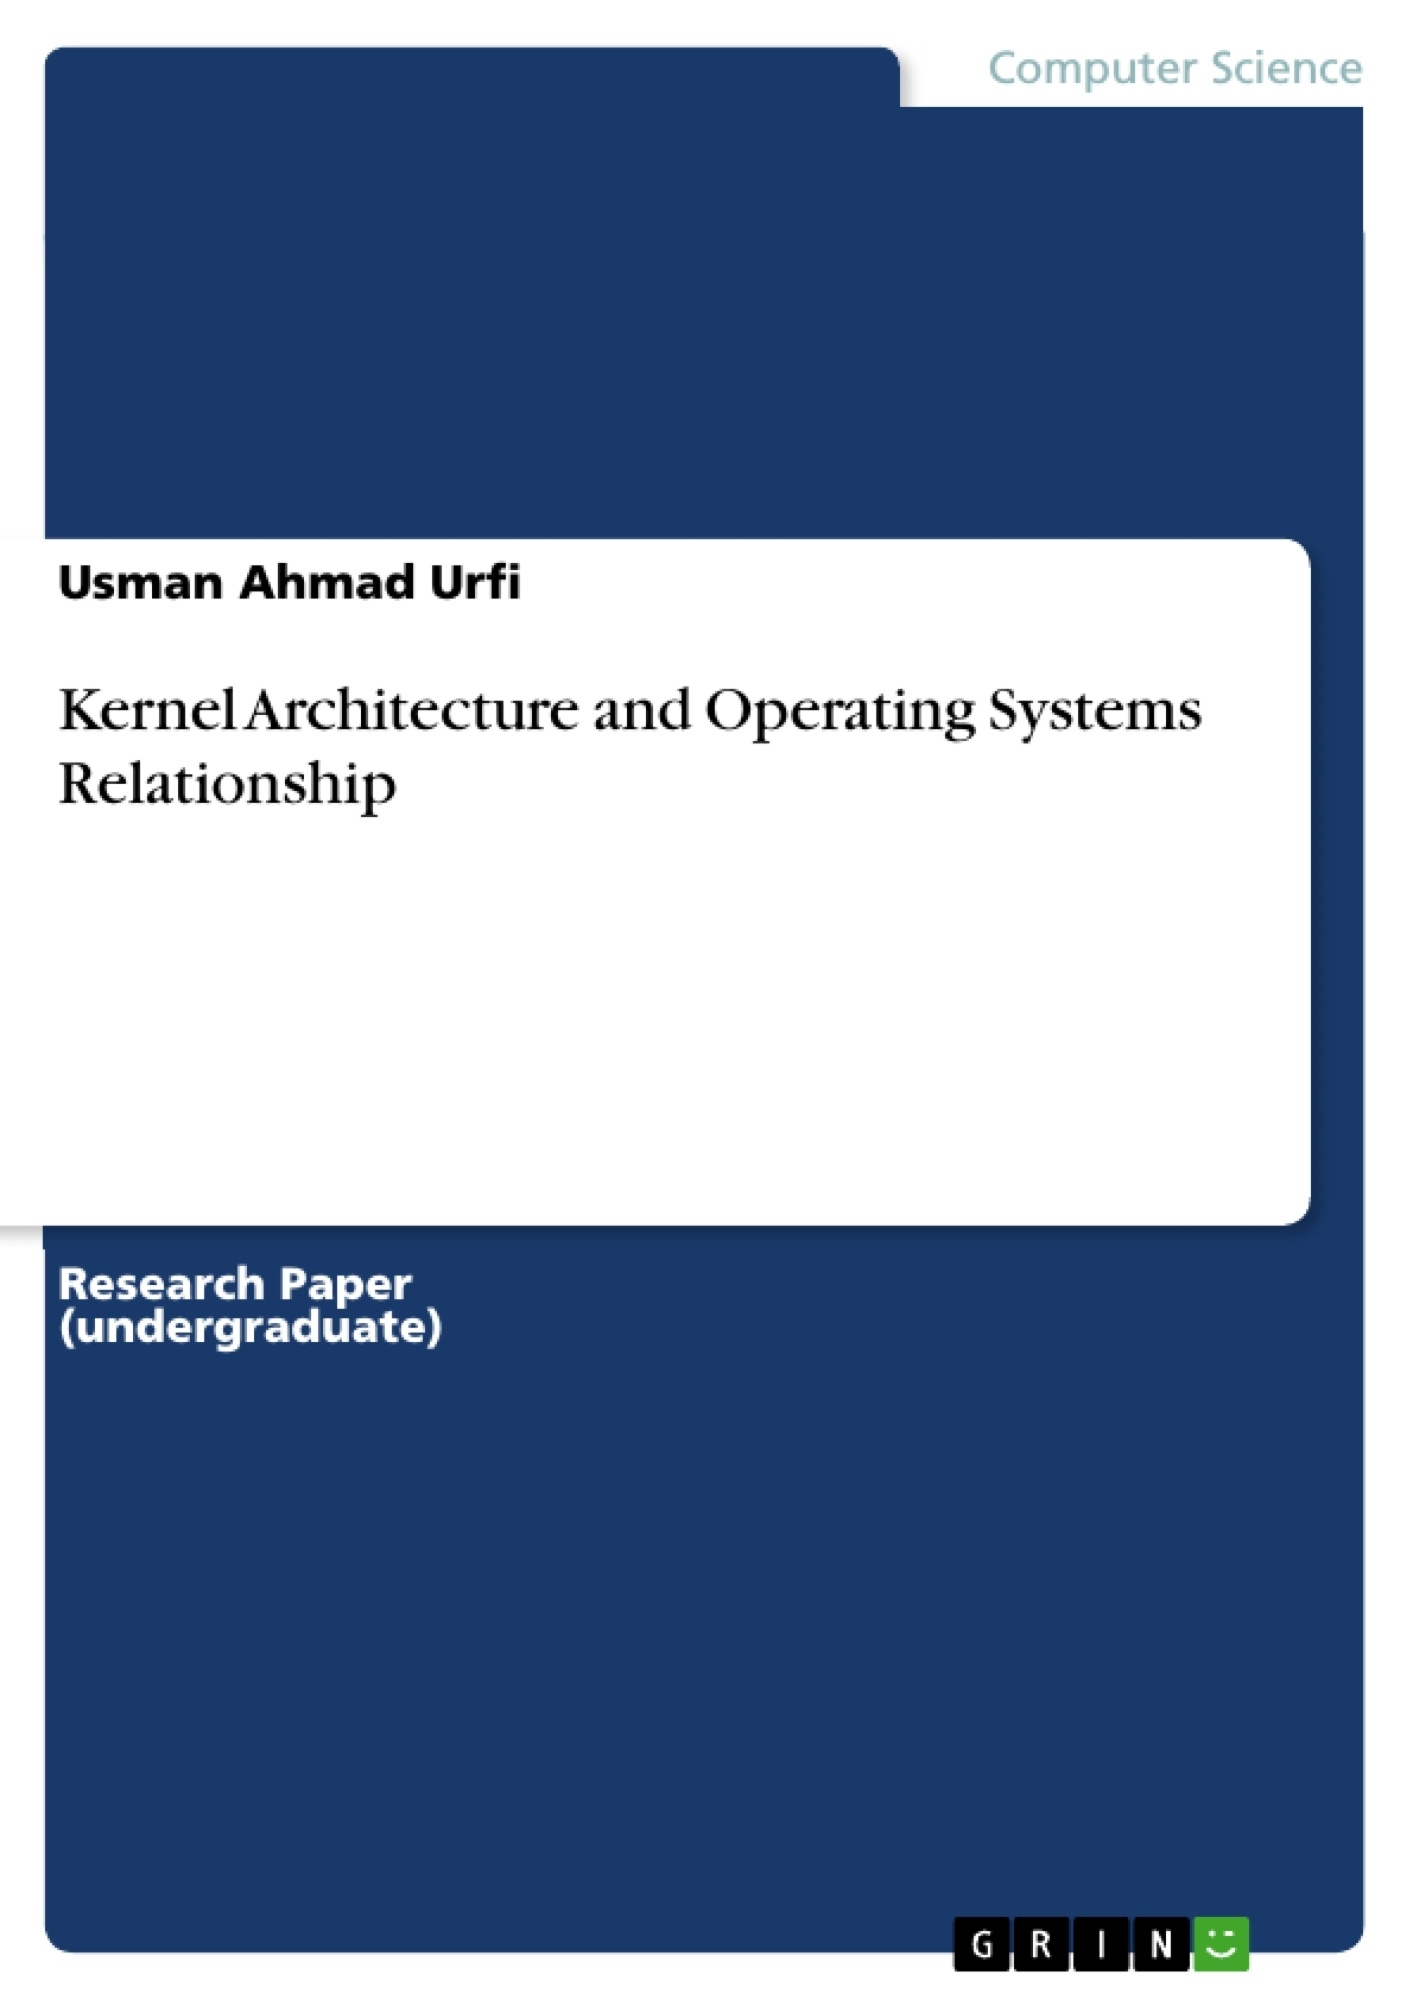 Title: Kernel Architecture and Operating Systems Relationship